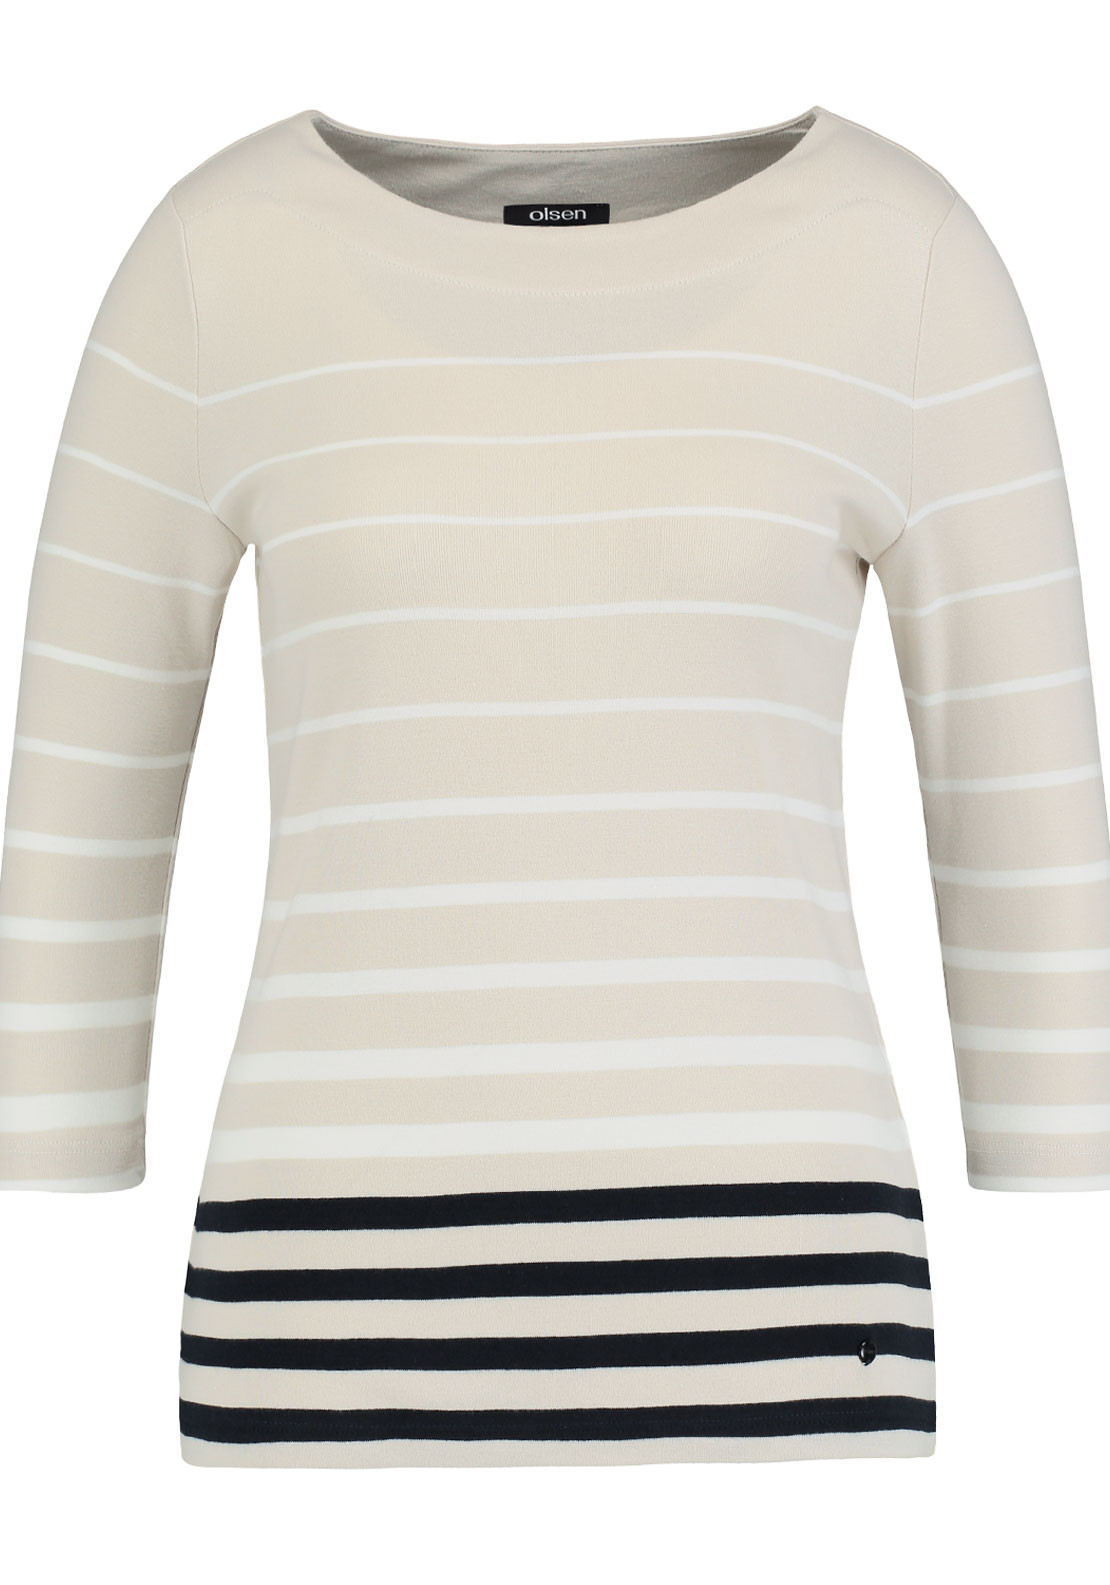 Olsen Striped Cropped Sleeve Top, Beige